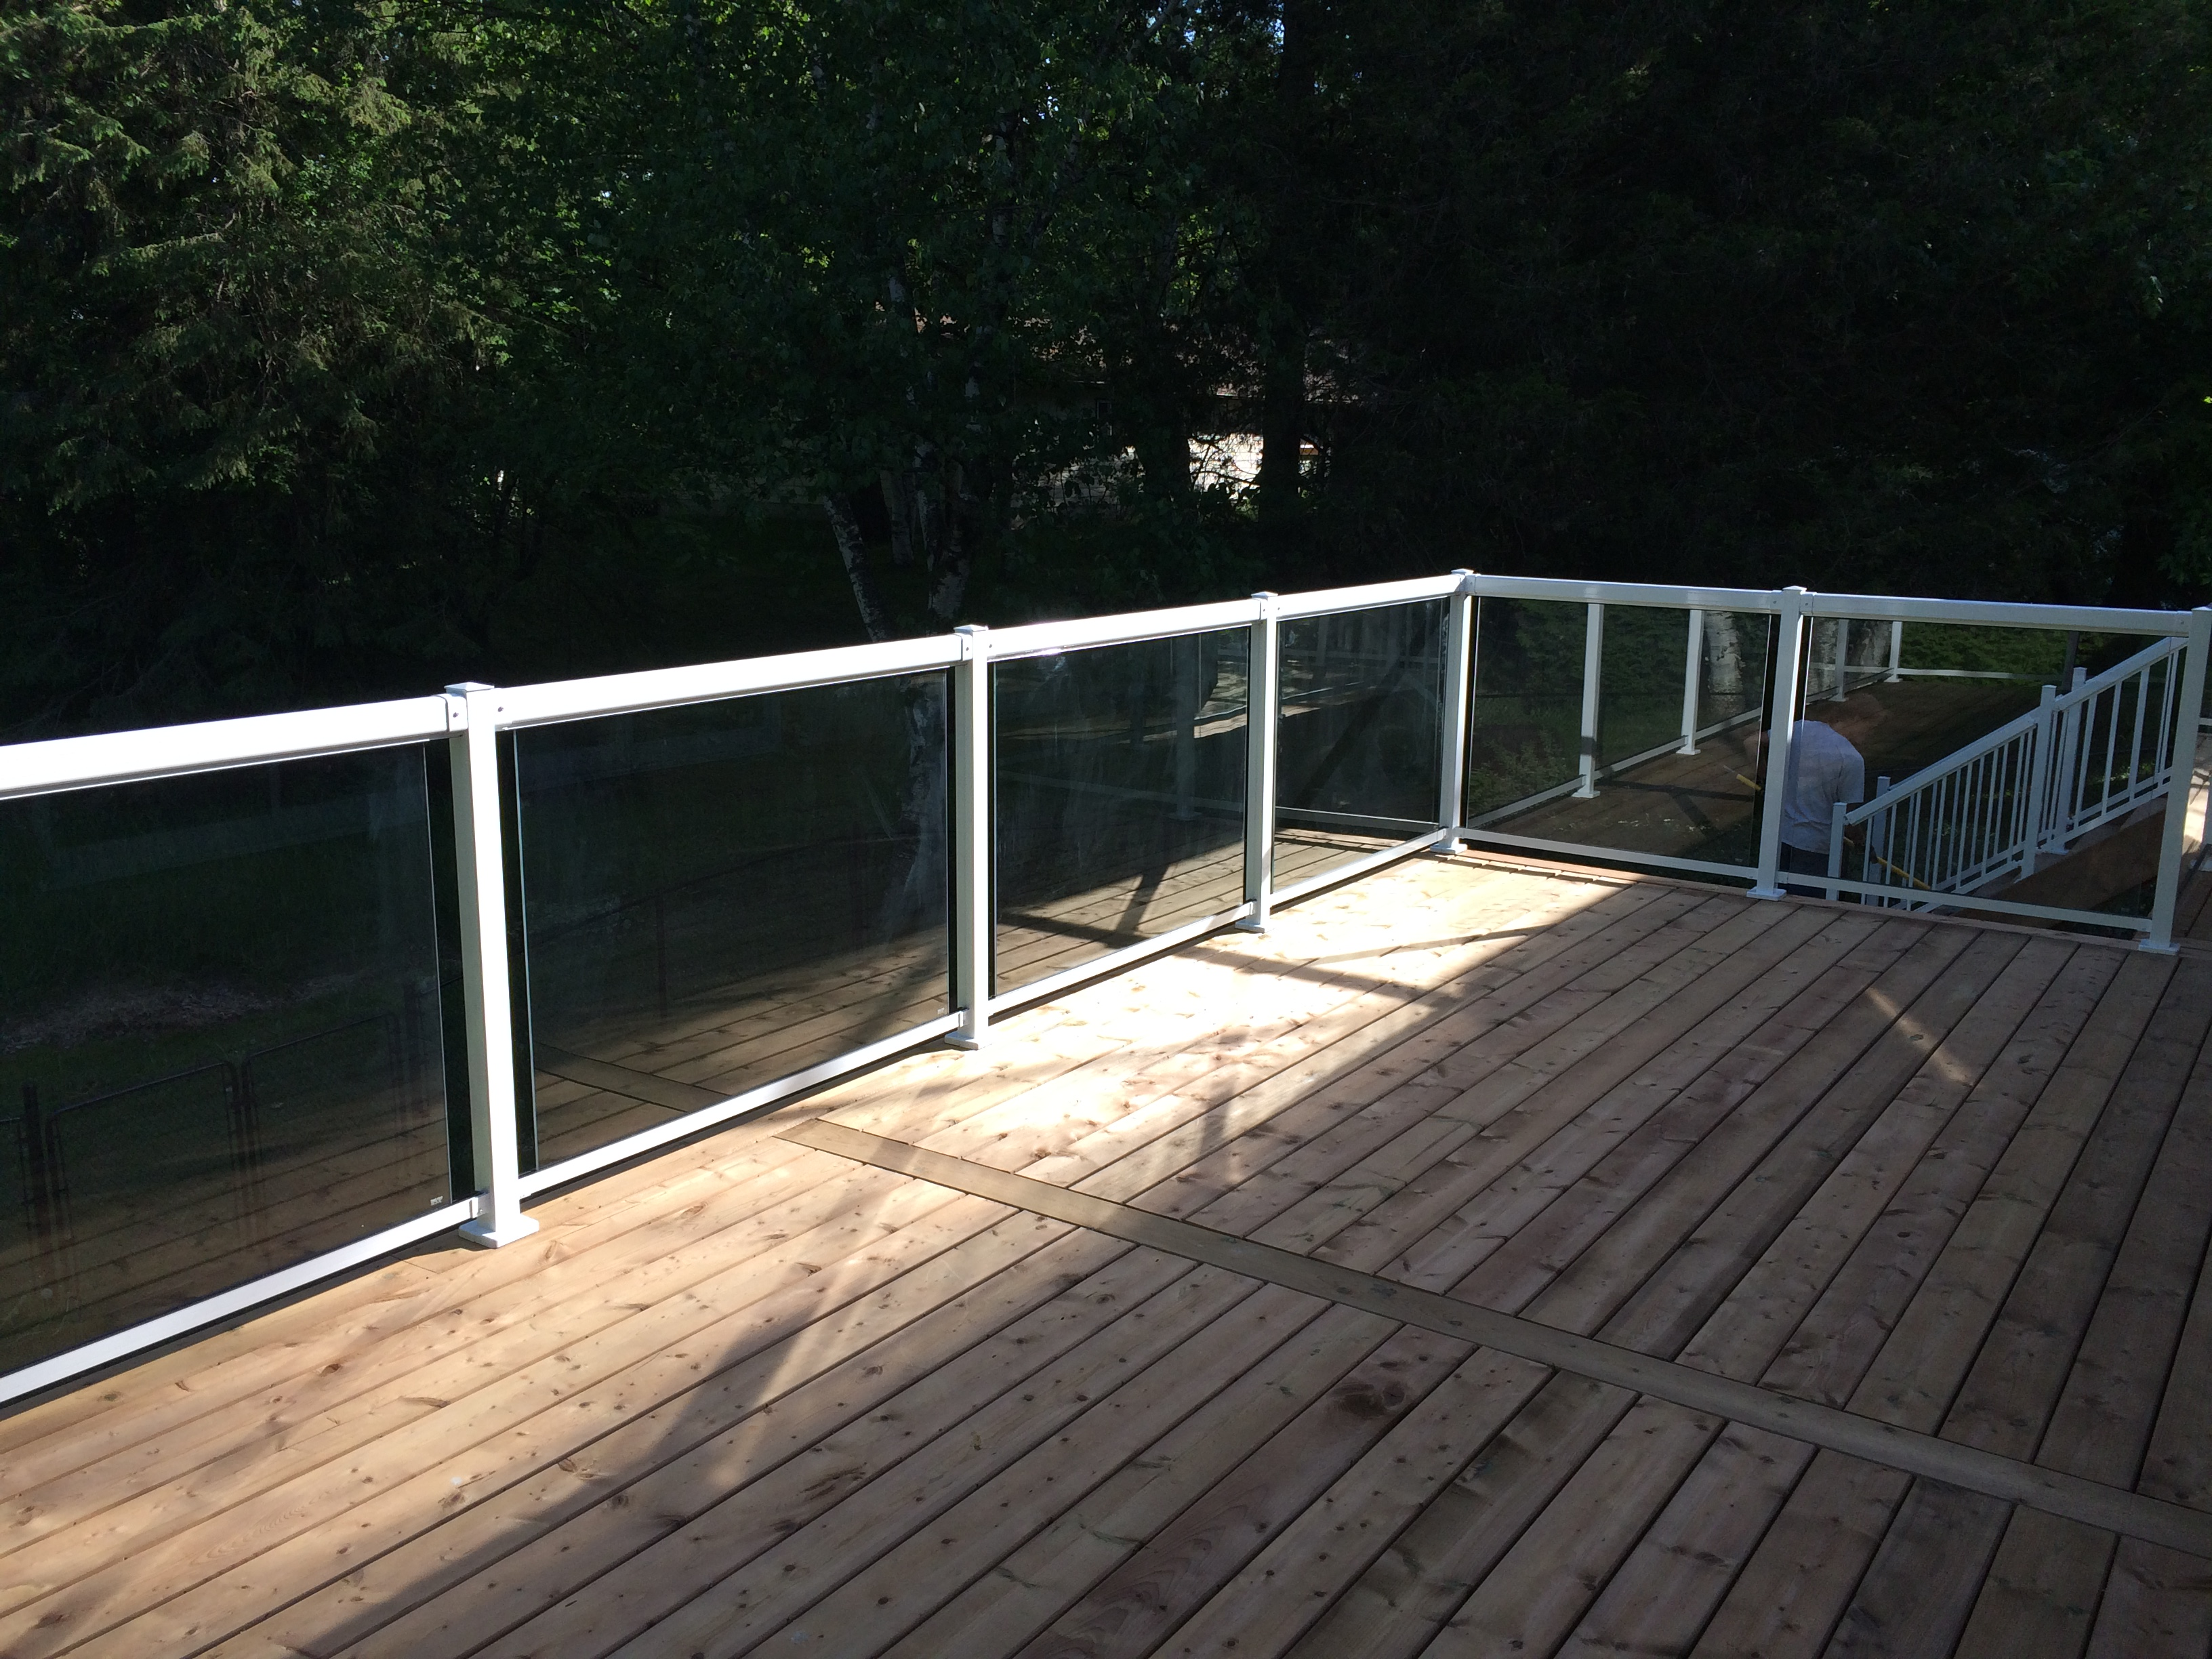 Sutton Deck - After Construction Looking Right